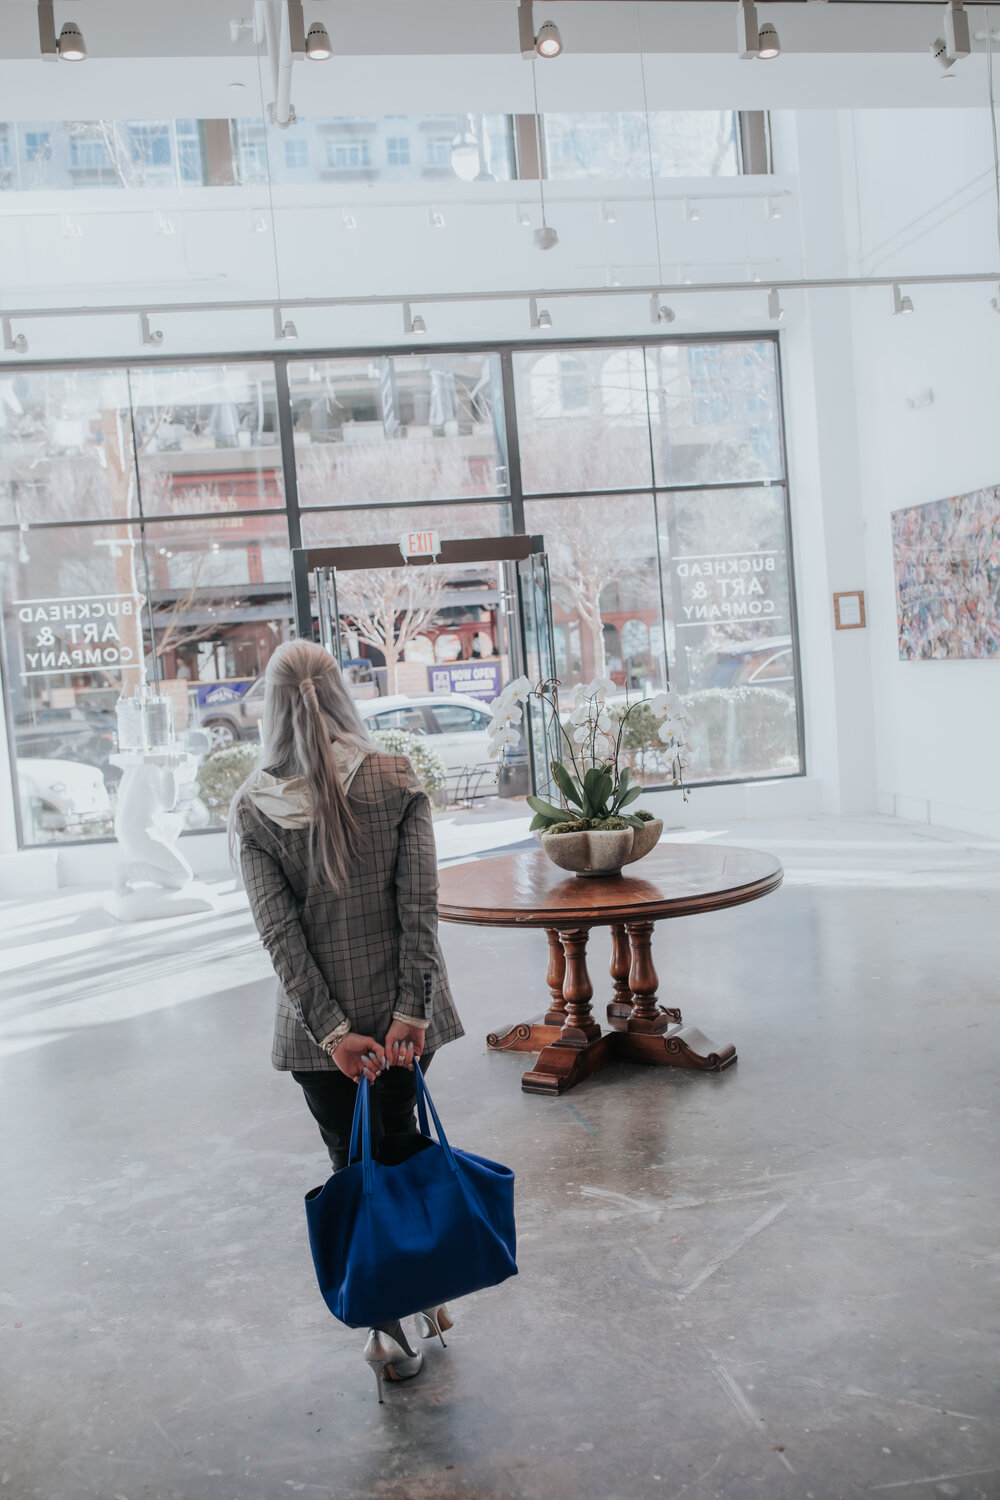 lisa in a gallery in atlanta wearing a tweed jacket with silver heels and socks with a blue bag